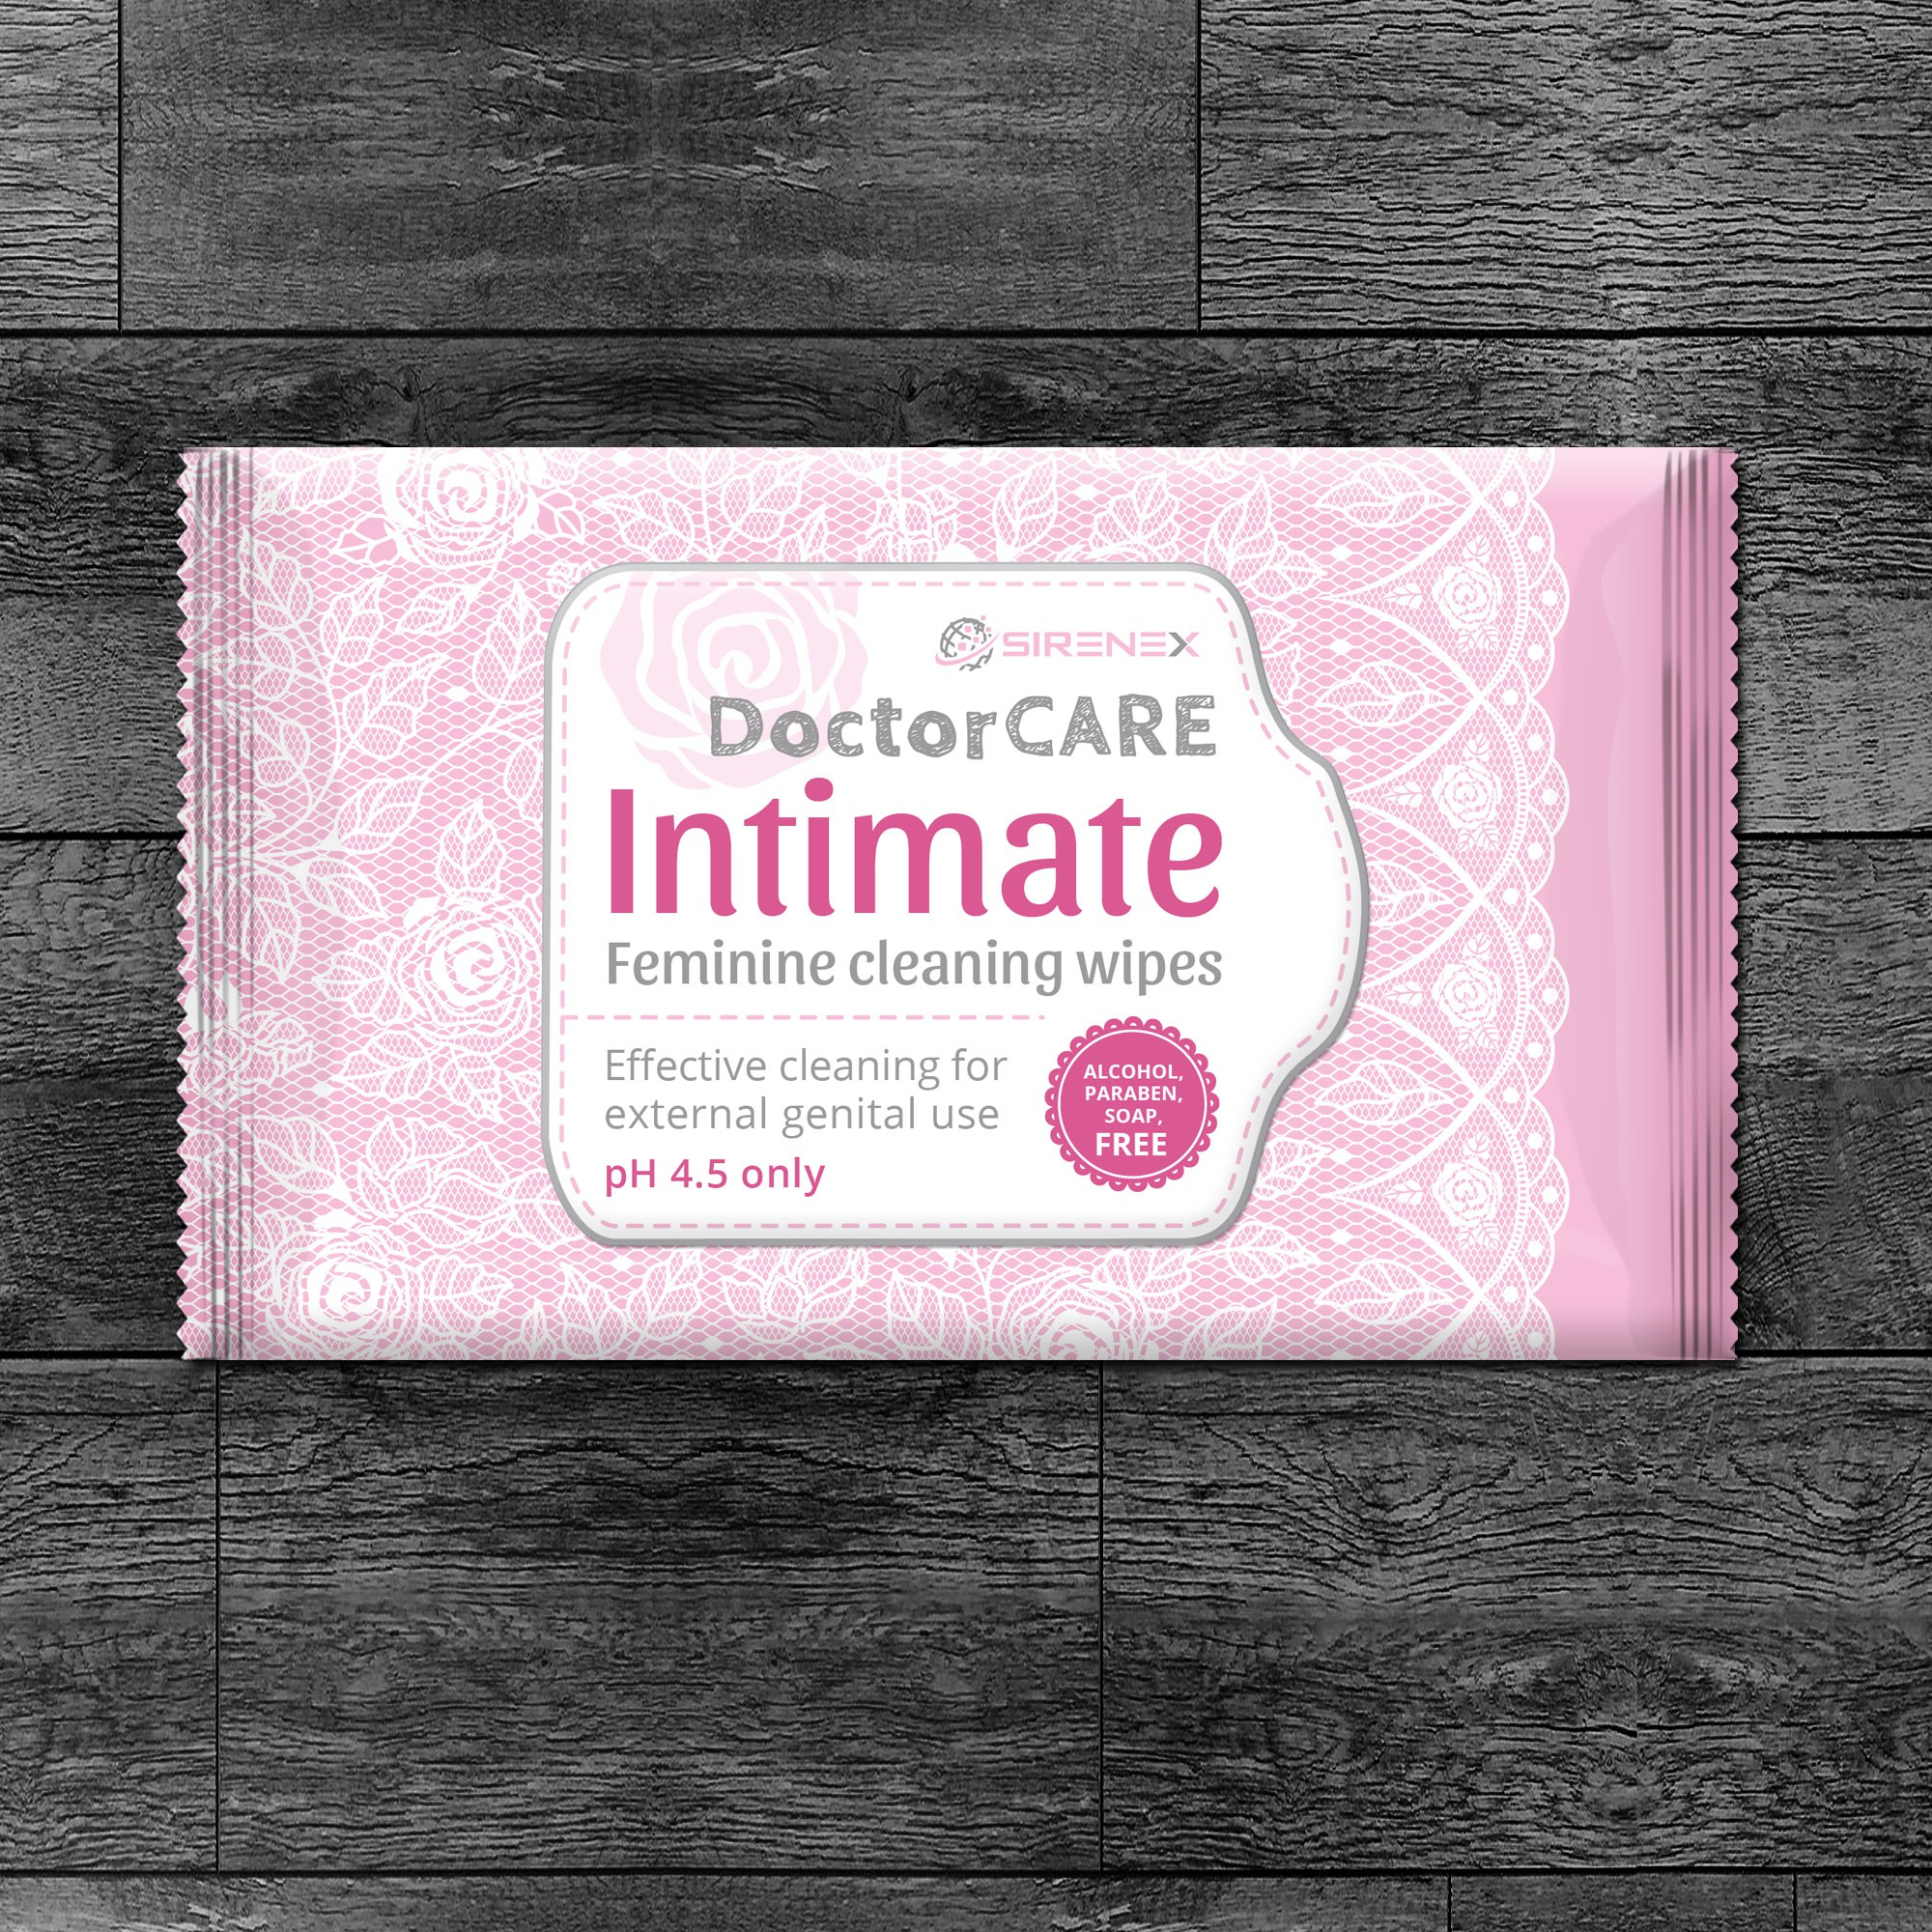 New Doctor Care Product Line